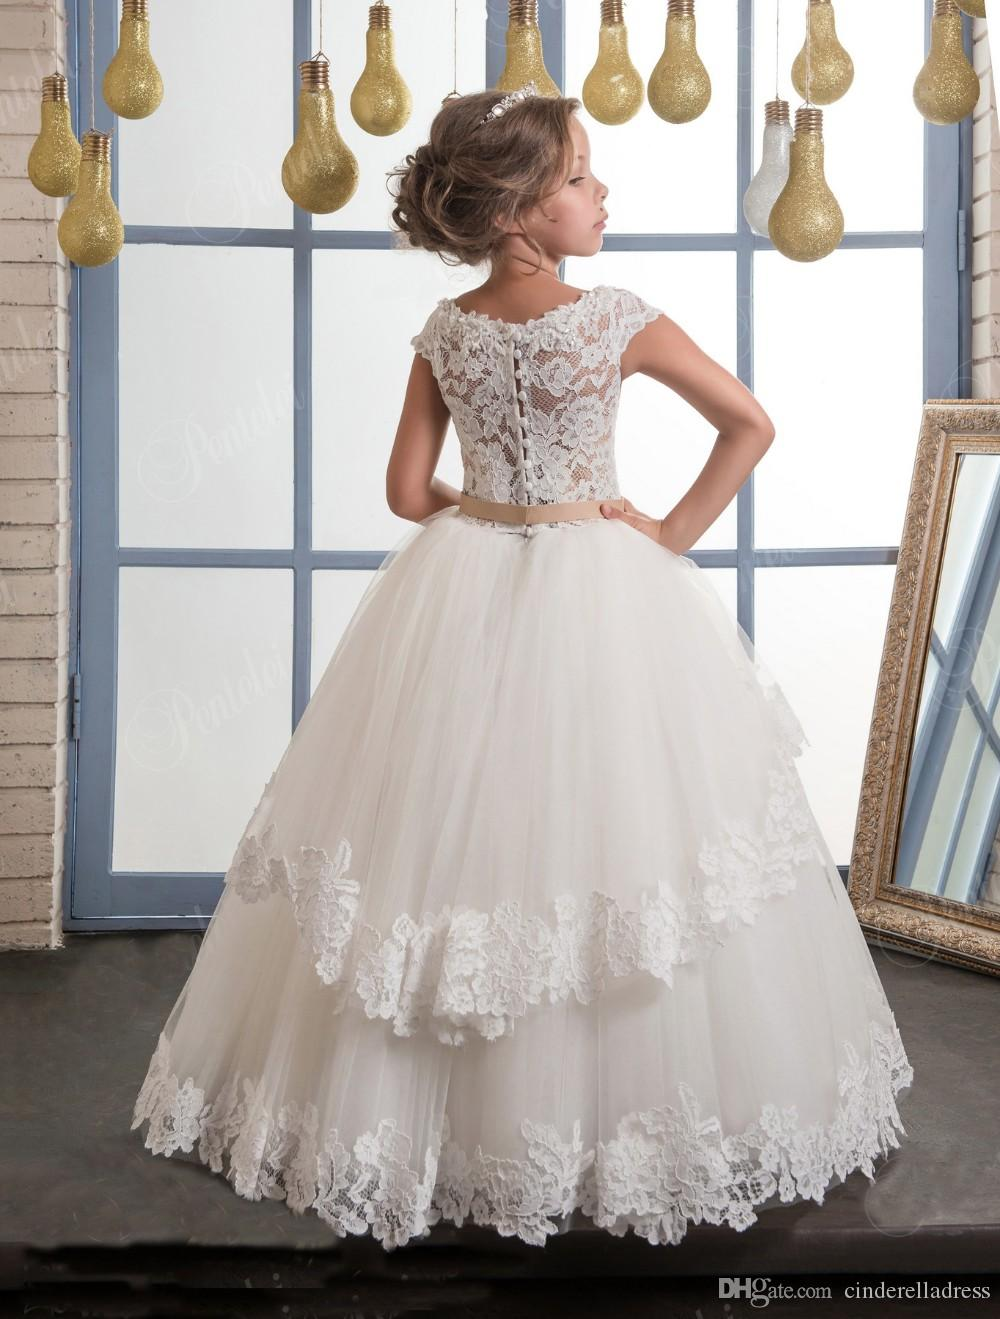 2017 Glitz Flower Girls Dresses Boat Neck A Line Lace Appliqued With Ribbon Belt Layers Skirts Long Kids Birthday Baby First Communion Dress